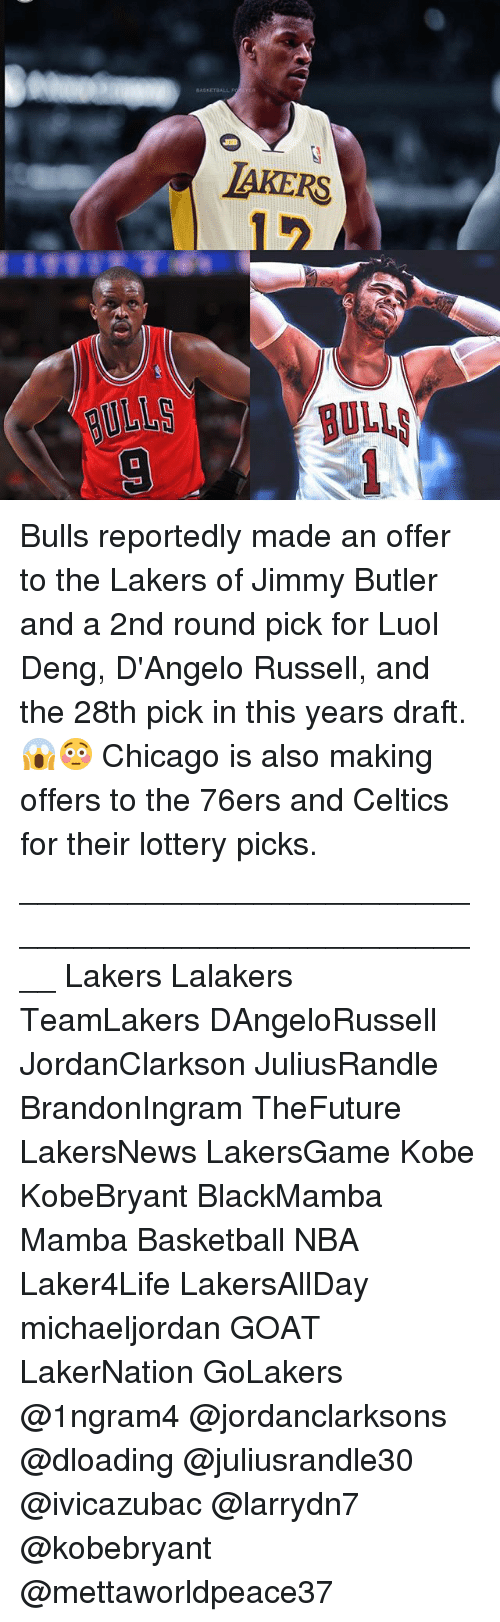 Philadelphia 76ers, Basketball, and Chicago: BAKERS Bulls reportedly made an offer to the Lakers of Jimmy Butler and a 2nd round pick for Luol Deng, D'Angelo Russell, and the 28th pick in this years draft.😱😳 Chicago is also making offers to the 76ers and Celtics for their lottery picks. ____________________________________________________ Lakers Lalakers TeamLakers DAngeloRussell JordanClarkson JuliusRandle BrandonIngram TheFuture LakersNews LakersGame Kobe KobeBryant BlackMamba Mamba Basketball NBA Laker4Life LakersAllDay michaeljordan GOAT LakerNation GoLakers @1ngram4 @jordanclarksons @dloading @juliusrandle30 @ivicazubac @larrydn7 @kobebryant @mettaworldpeace37